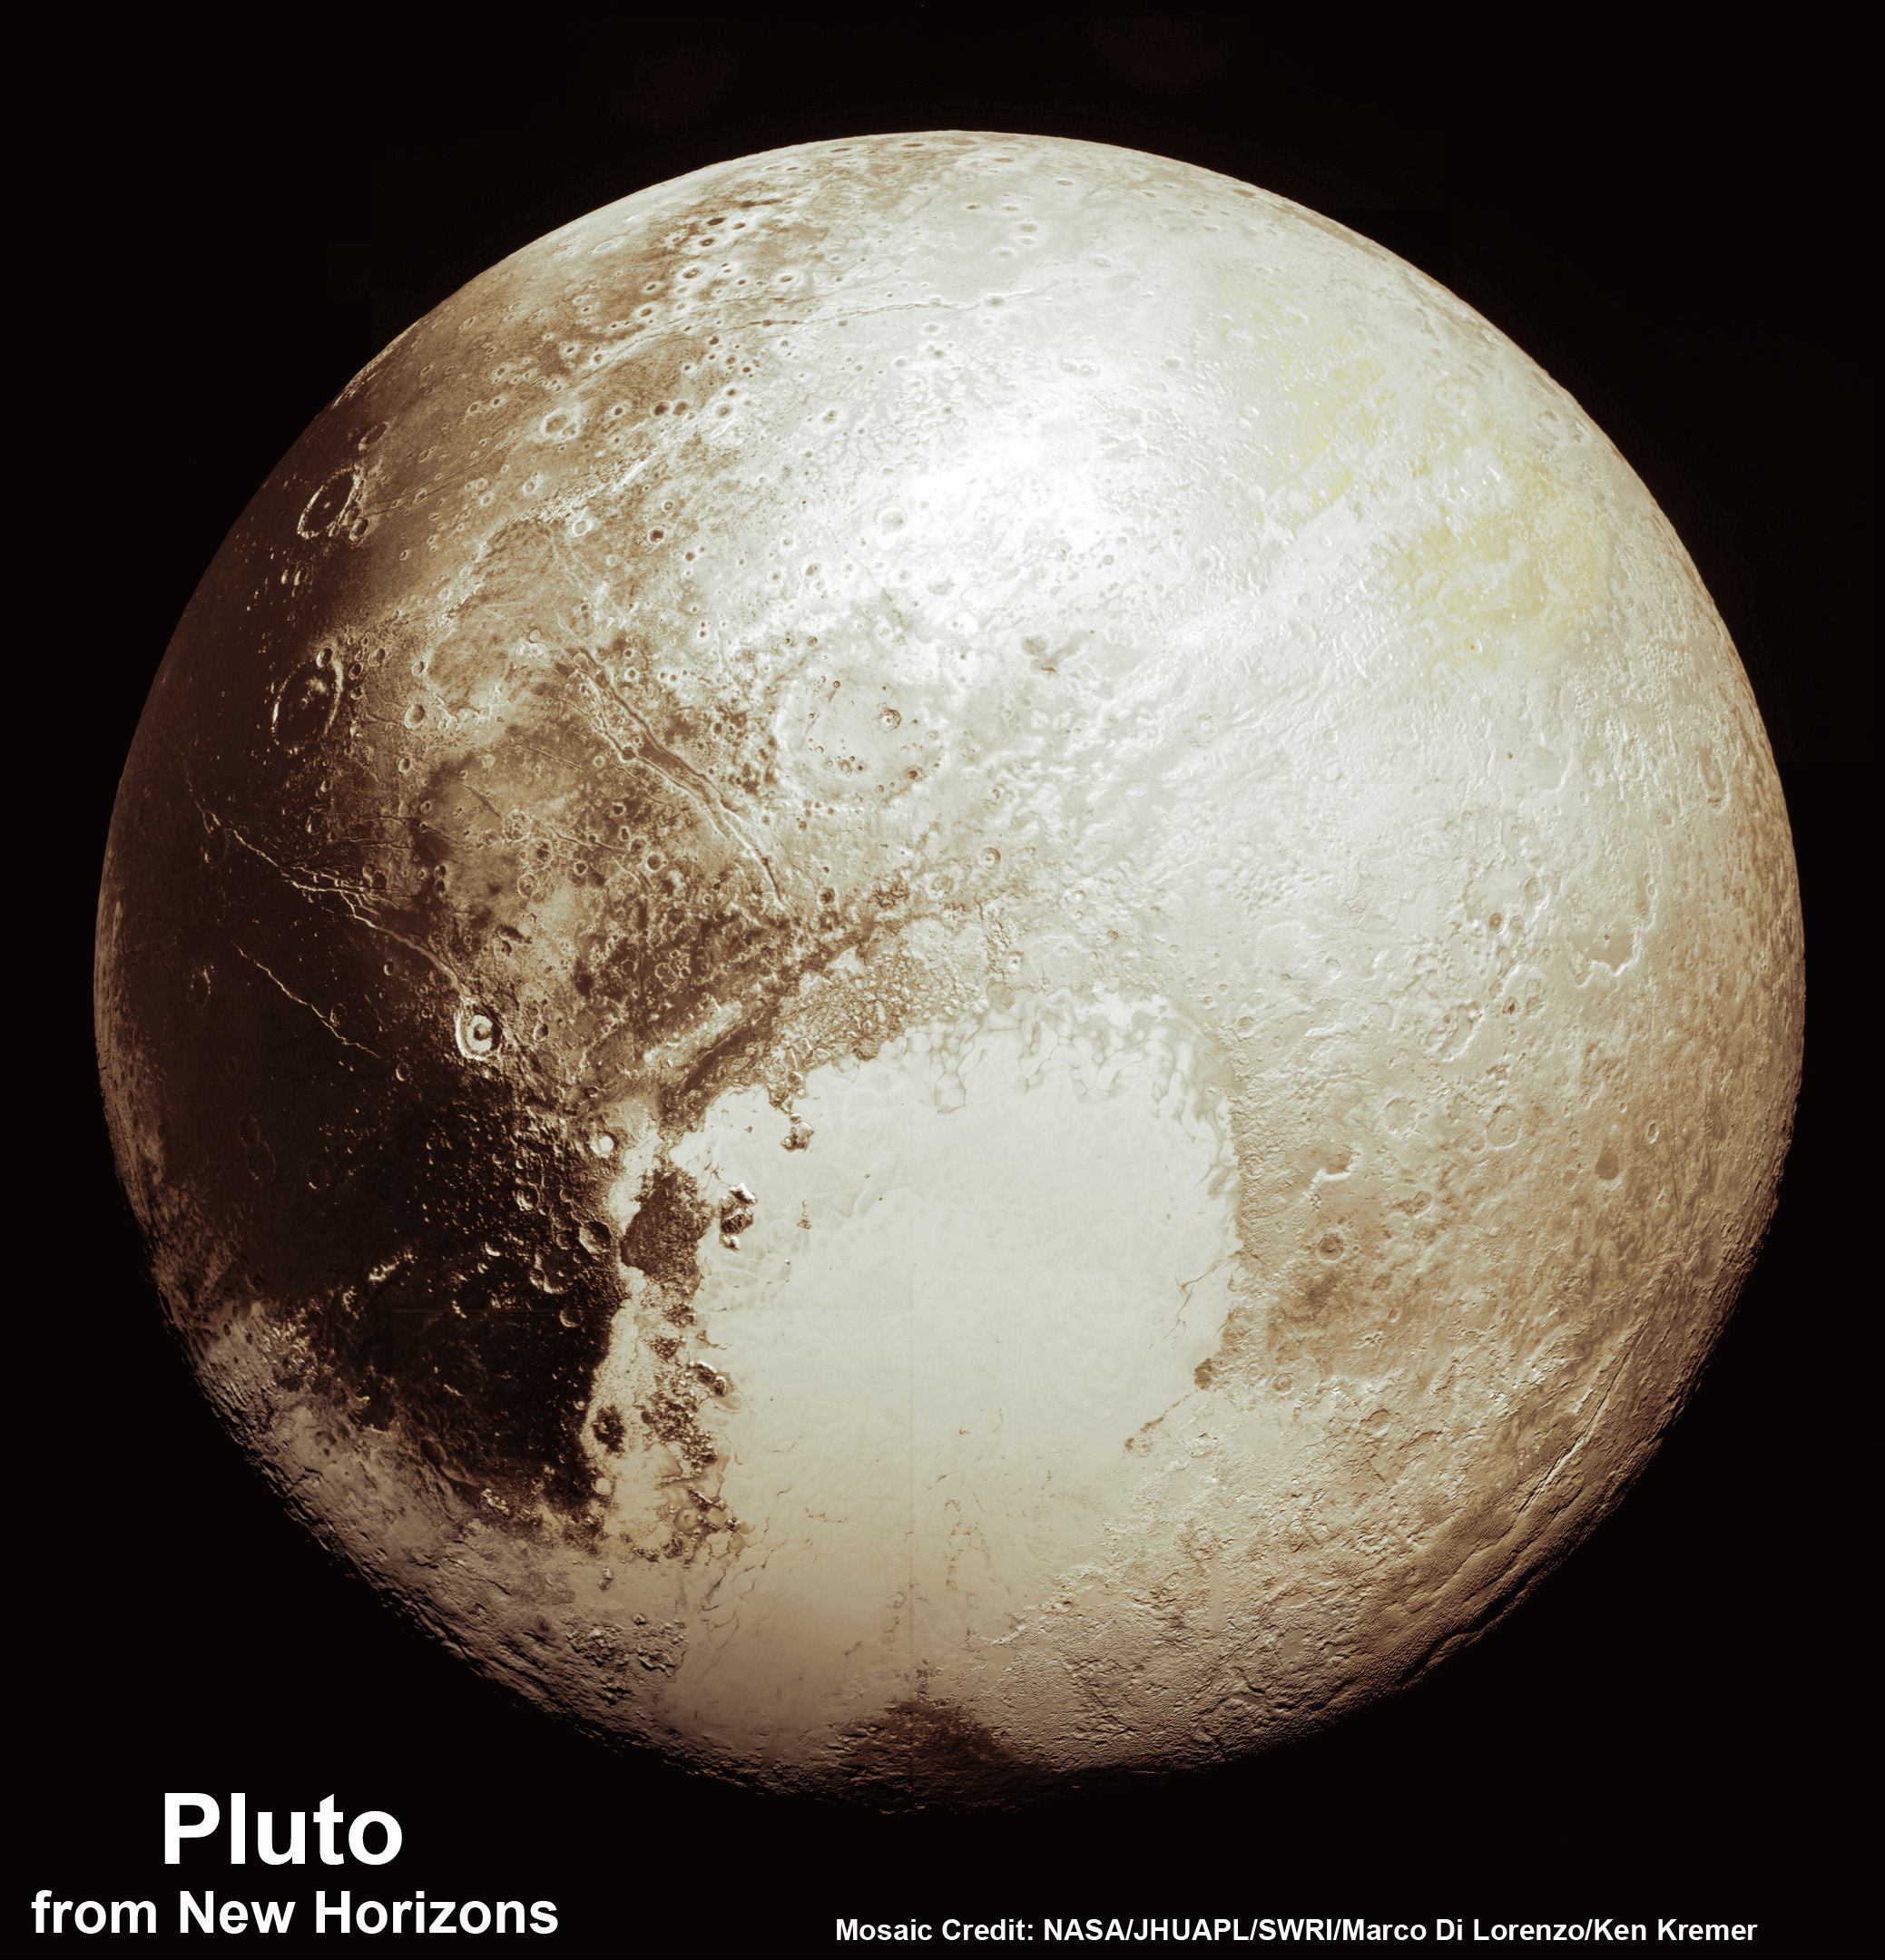 nasa images of pluto-#17